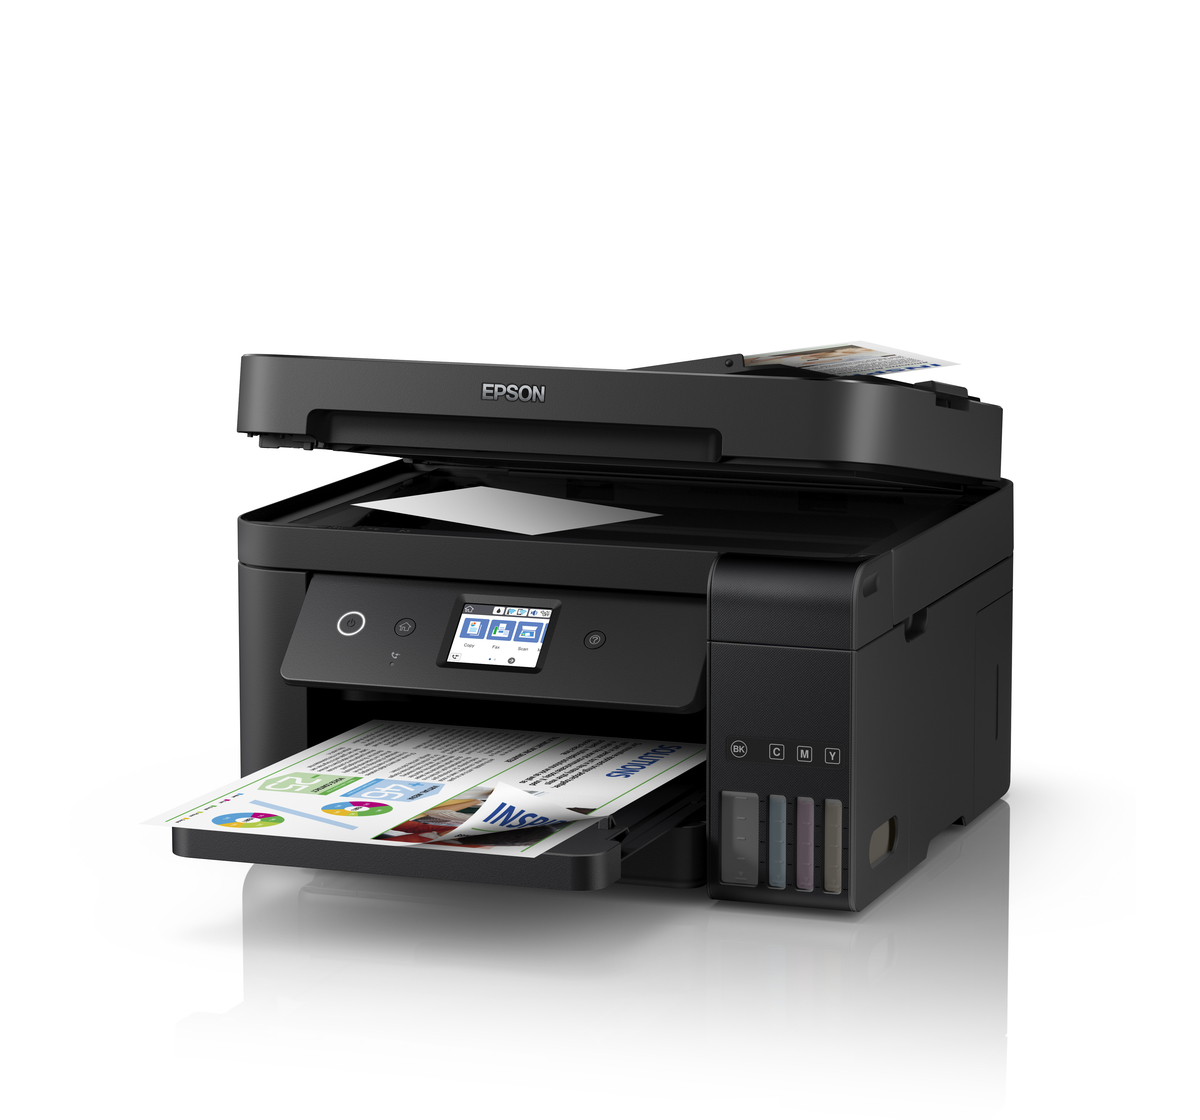 Epson L6190 Wi-Fi Duplex All-in-One Ink Tank Printer with ADF